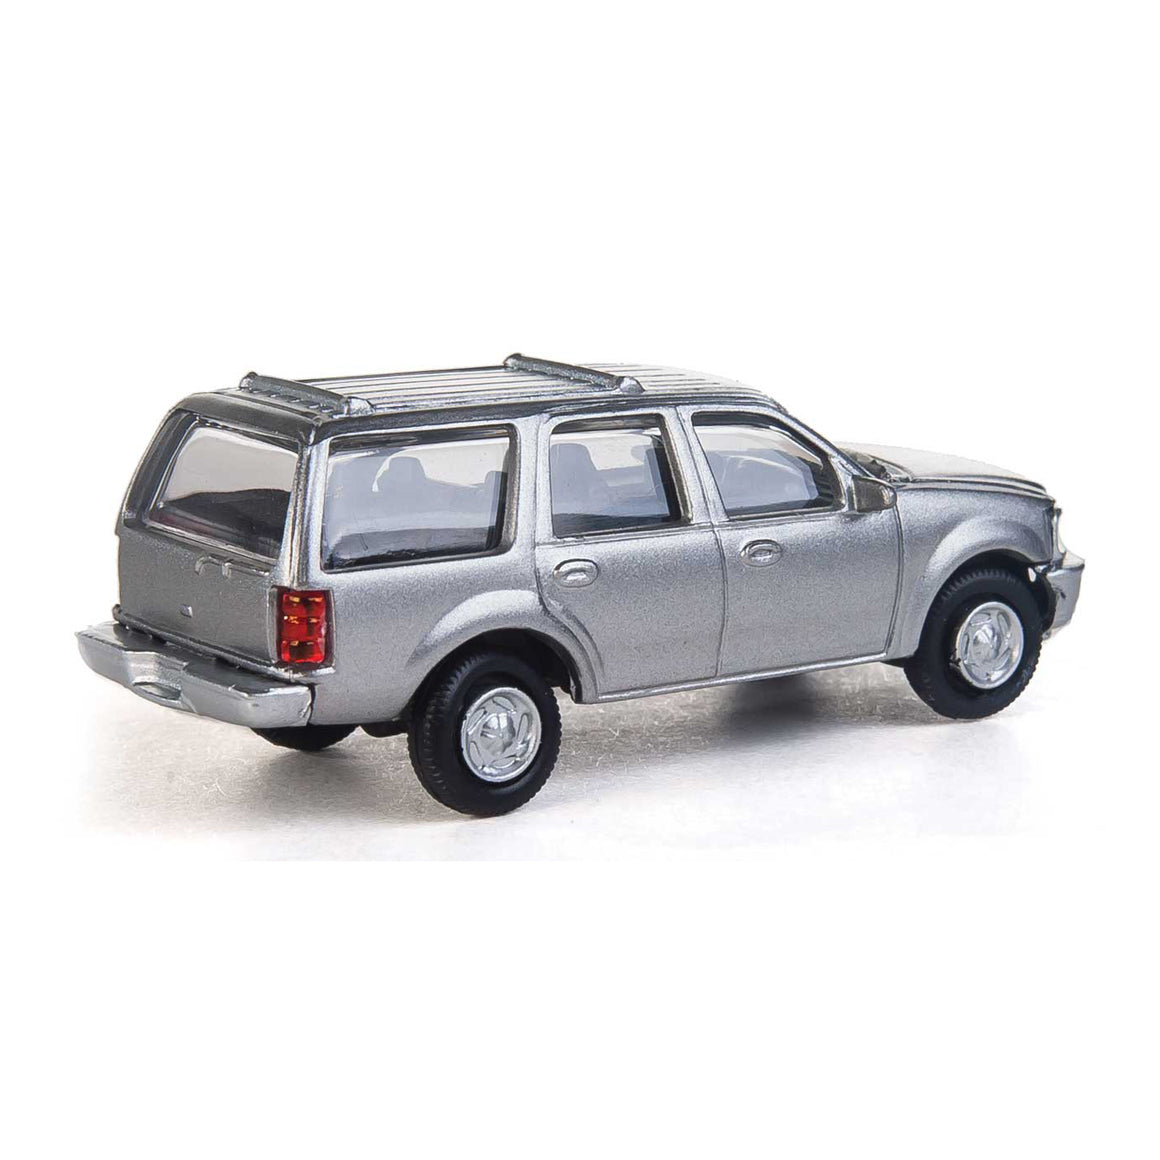 HO Scale: Ford® Expedition Service Vehicle - Unmarked Silver